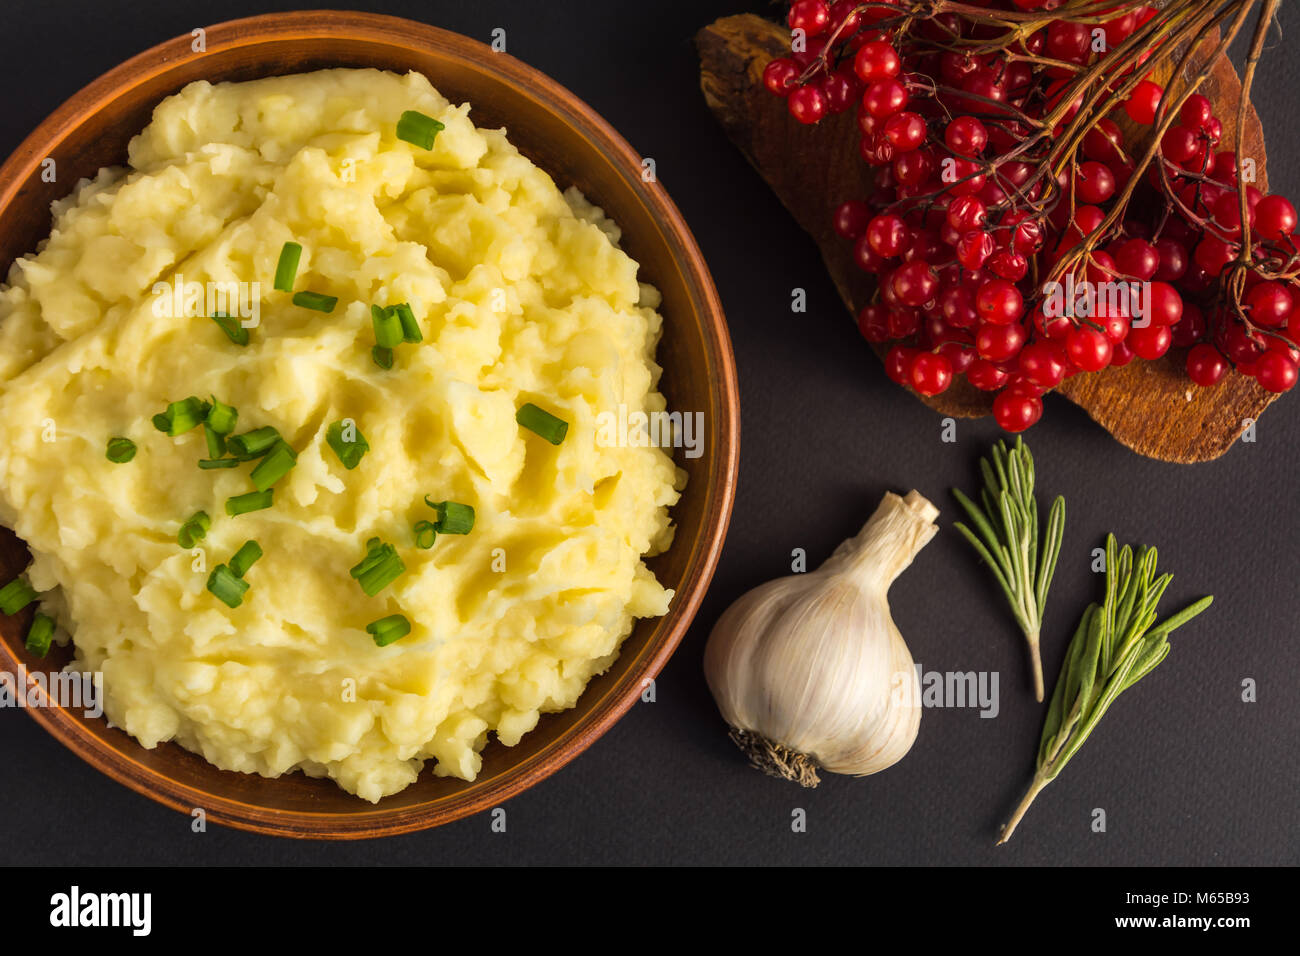 Food and drink - Stock Image